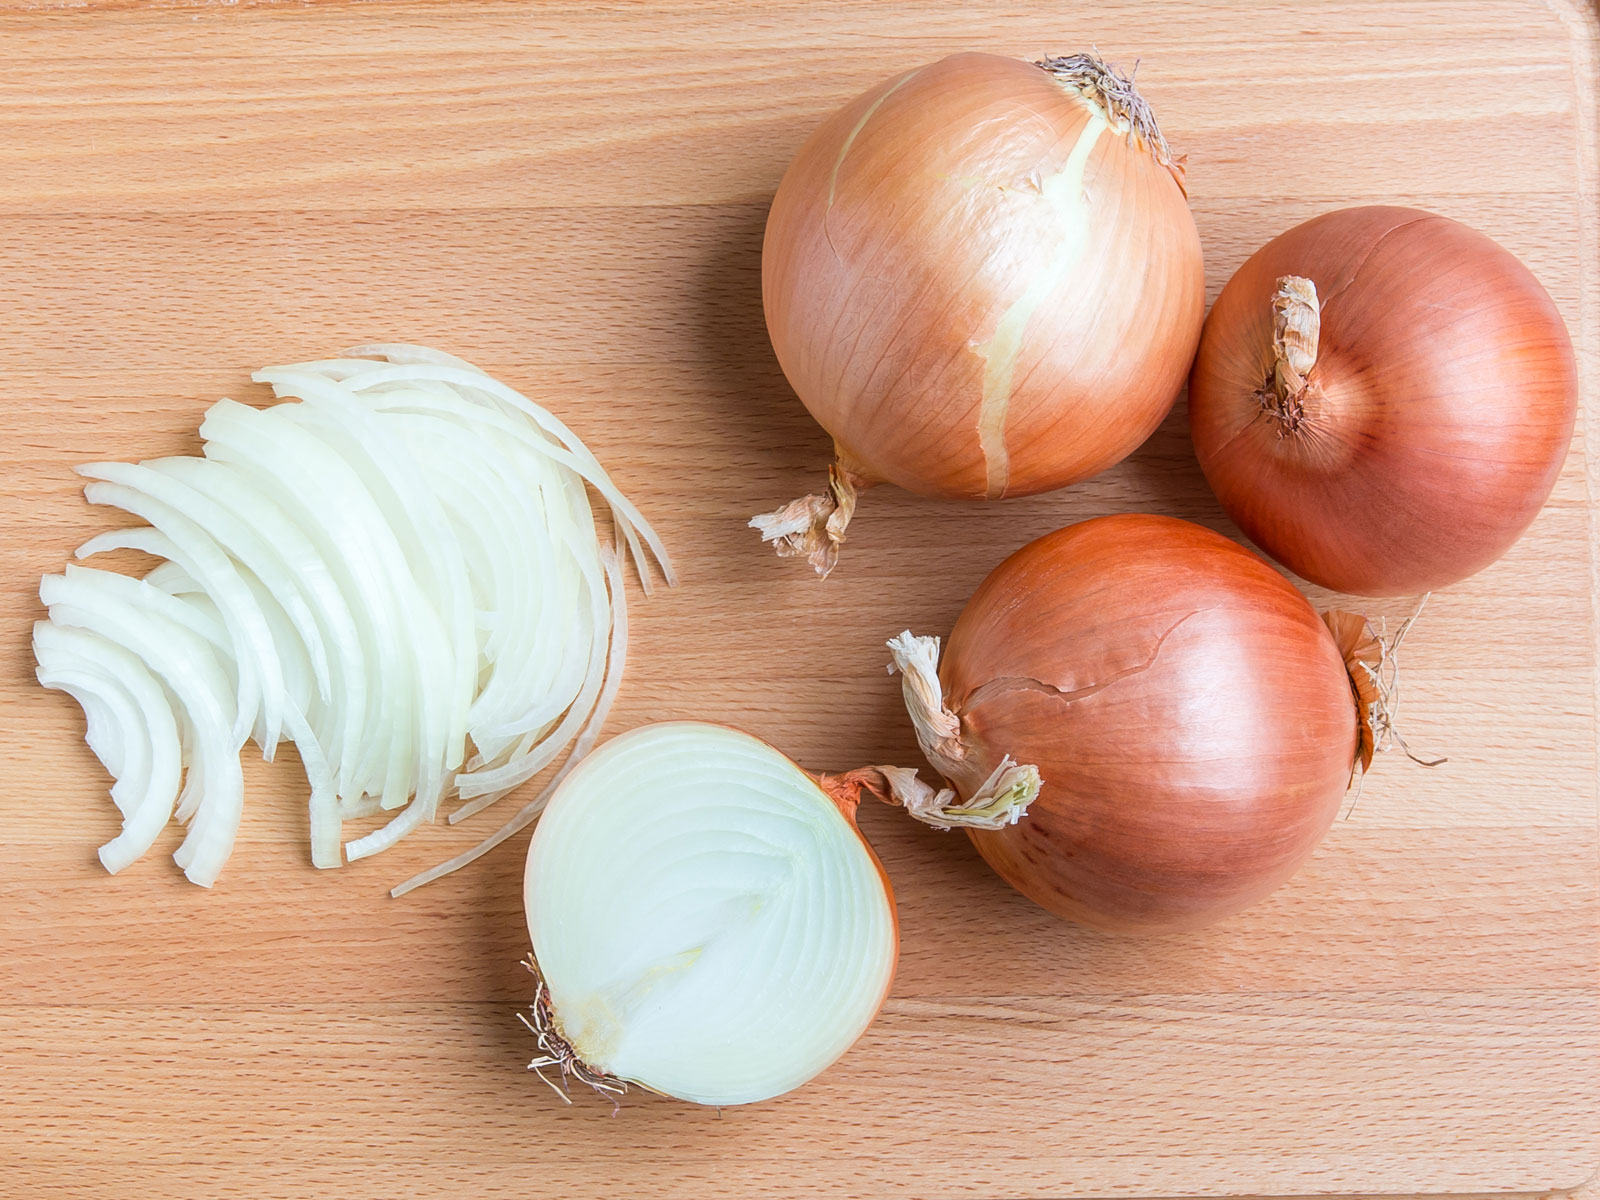 This Kitchen Tool Is My Secret Weapon for Cutting Onions Without Crying